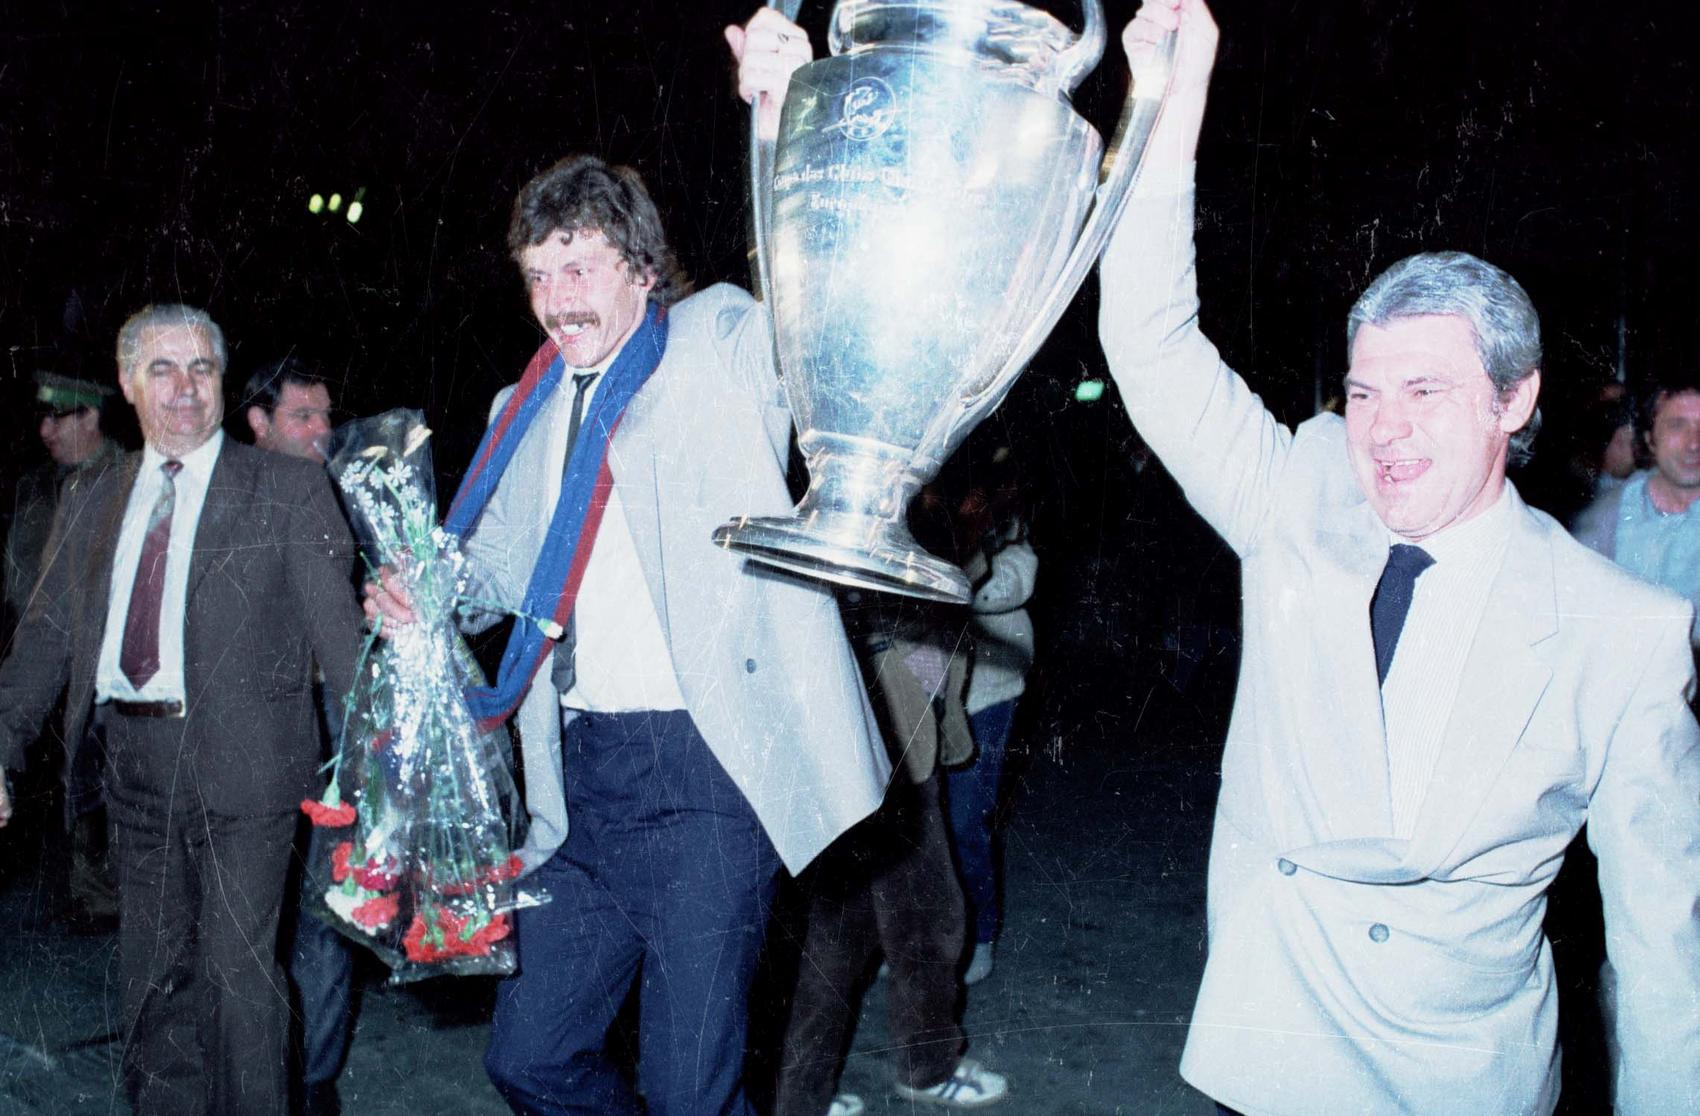 1986, Otopeni - Emeric Ienei and Helmut Duckadam present the UEFA Champions League trophy to the tens of thousands of people welcoming the team at Otopeni Airport.